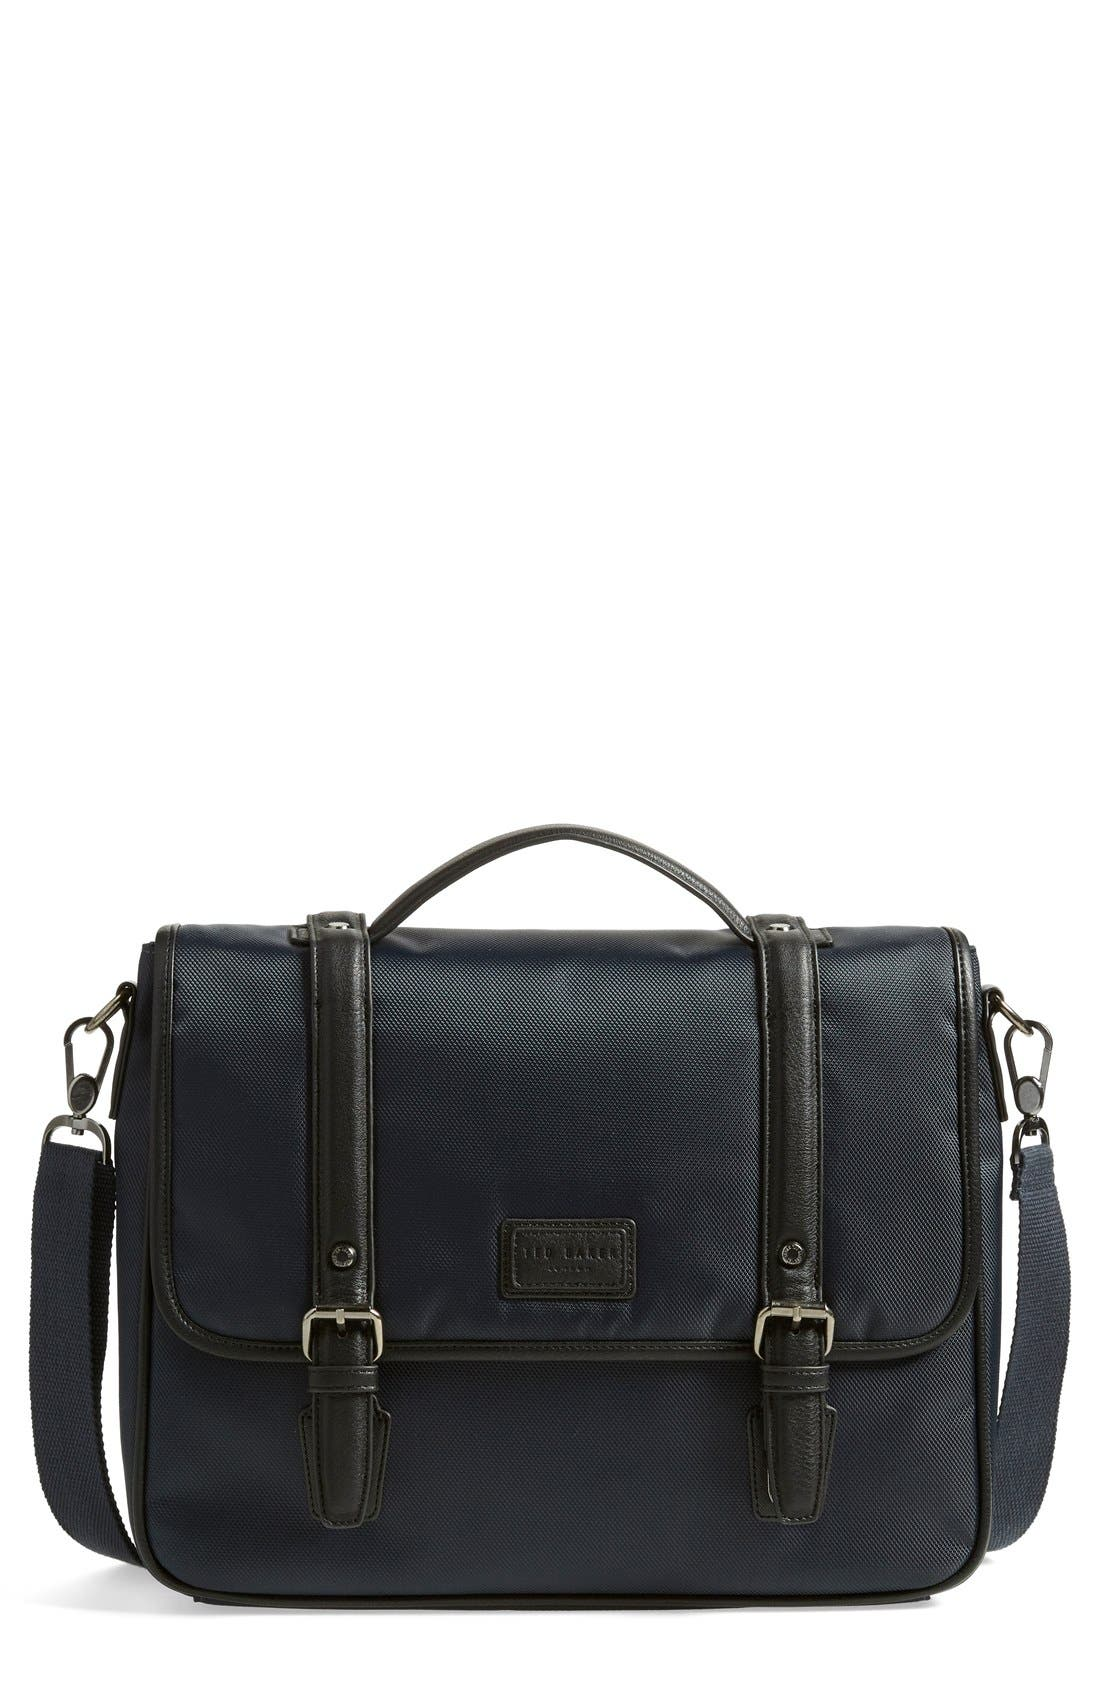 Main Image - Ted Baker London 'Rooks' Messenger Bag